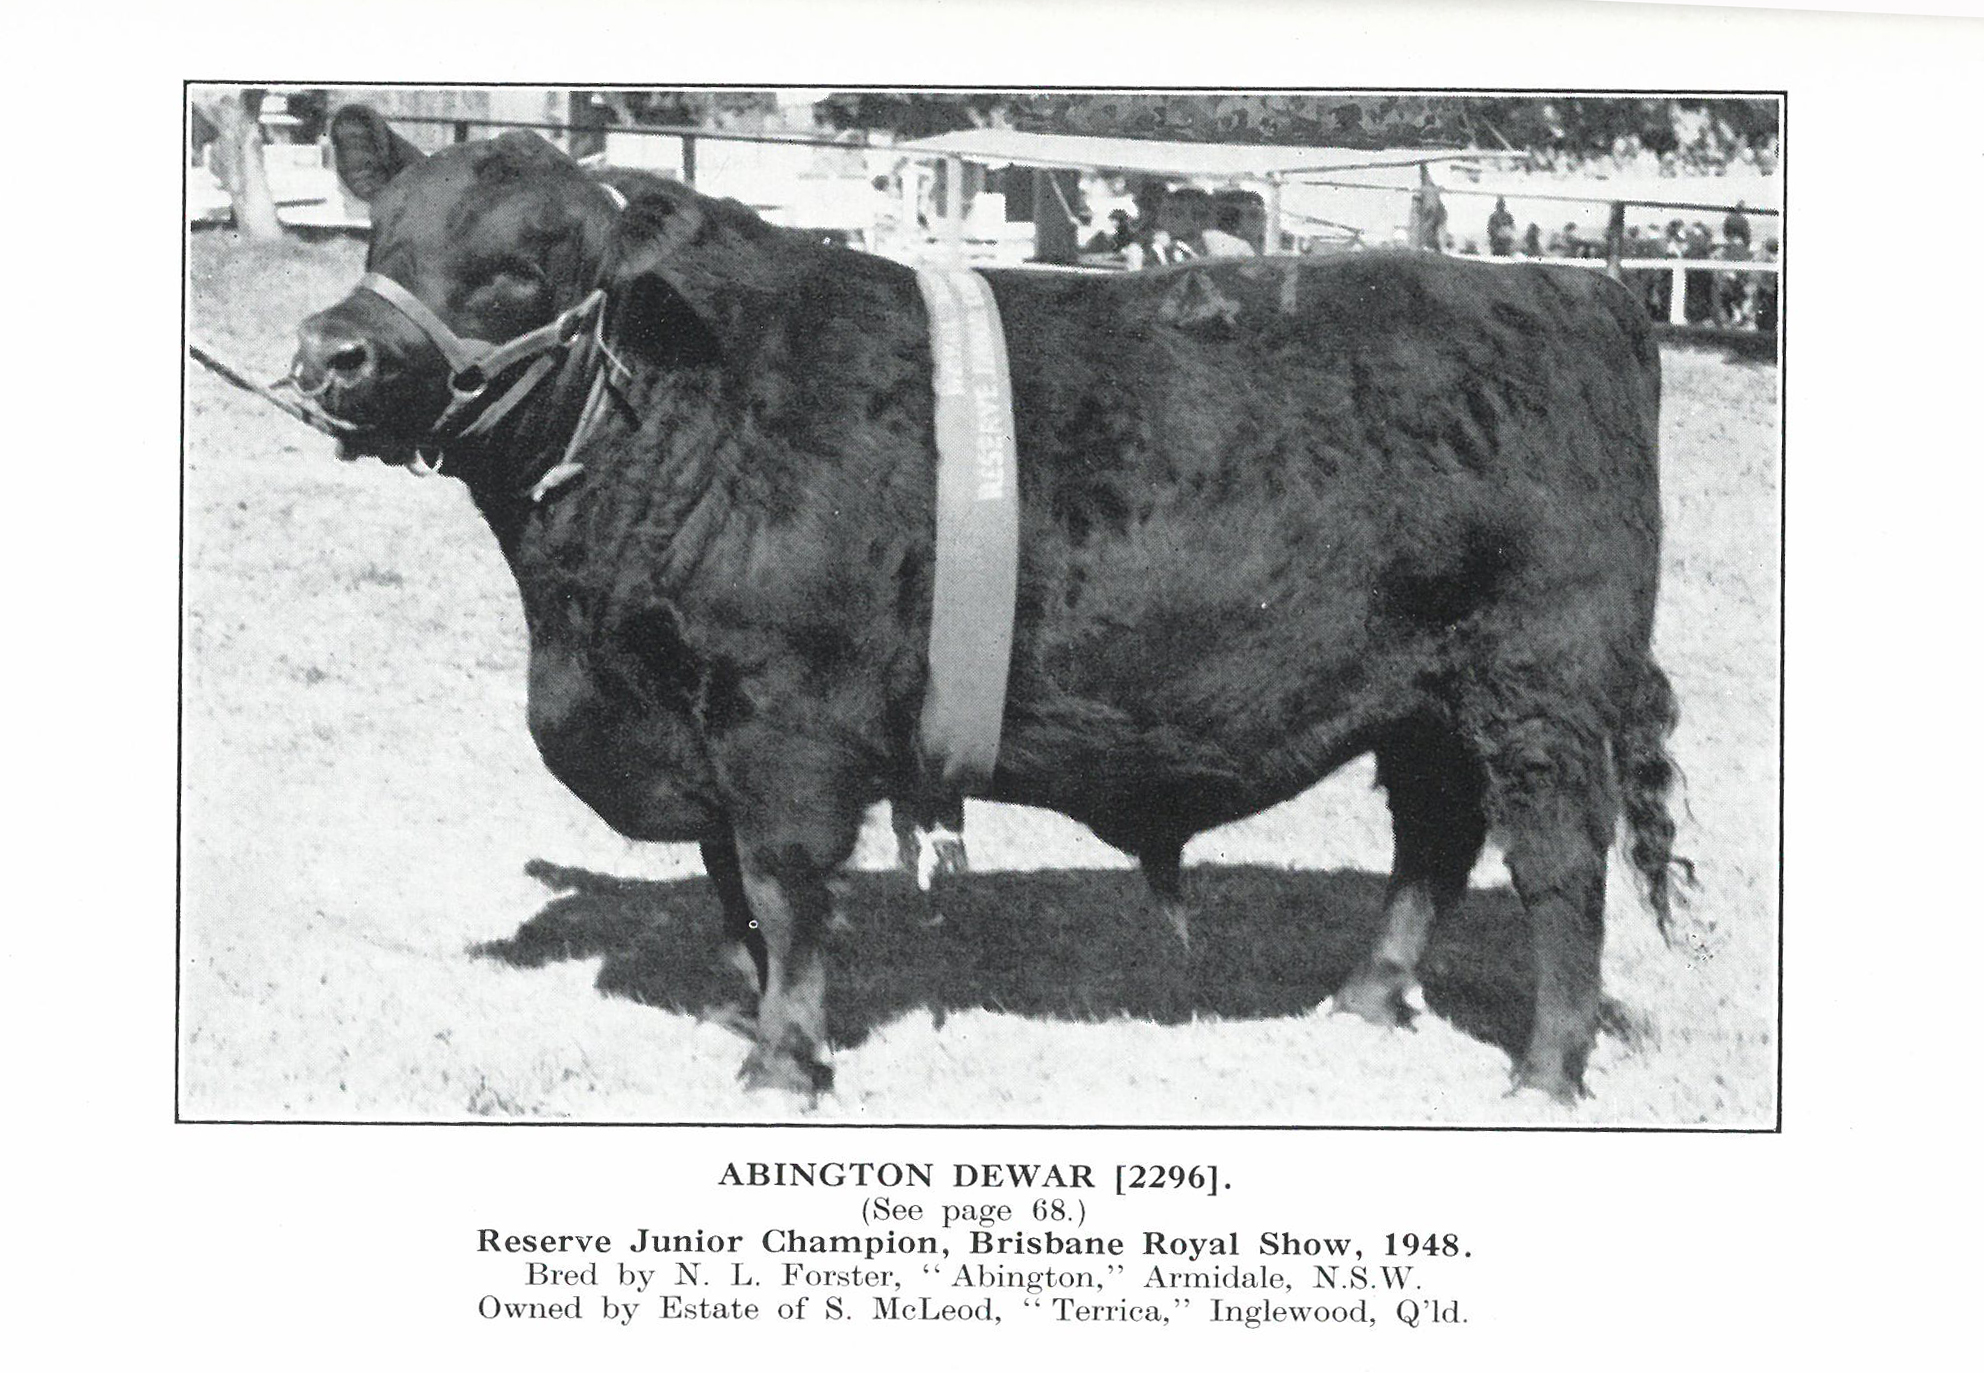 Abington Dewar